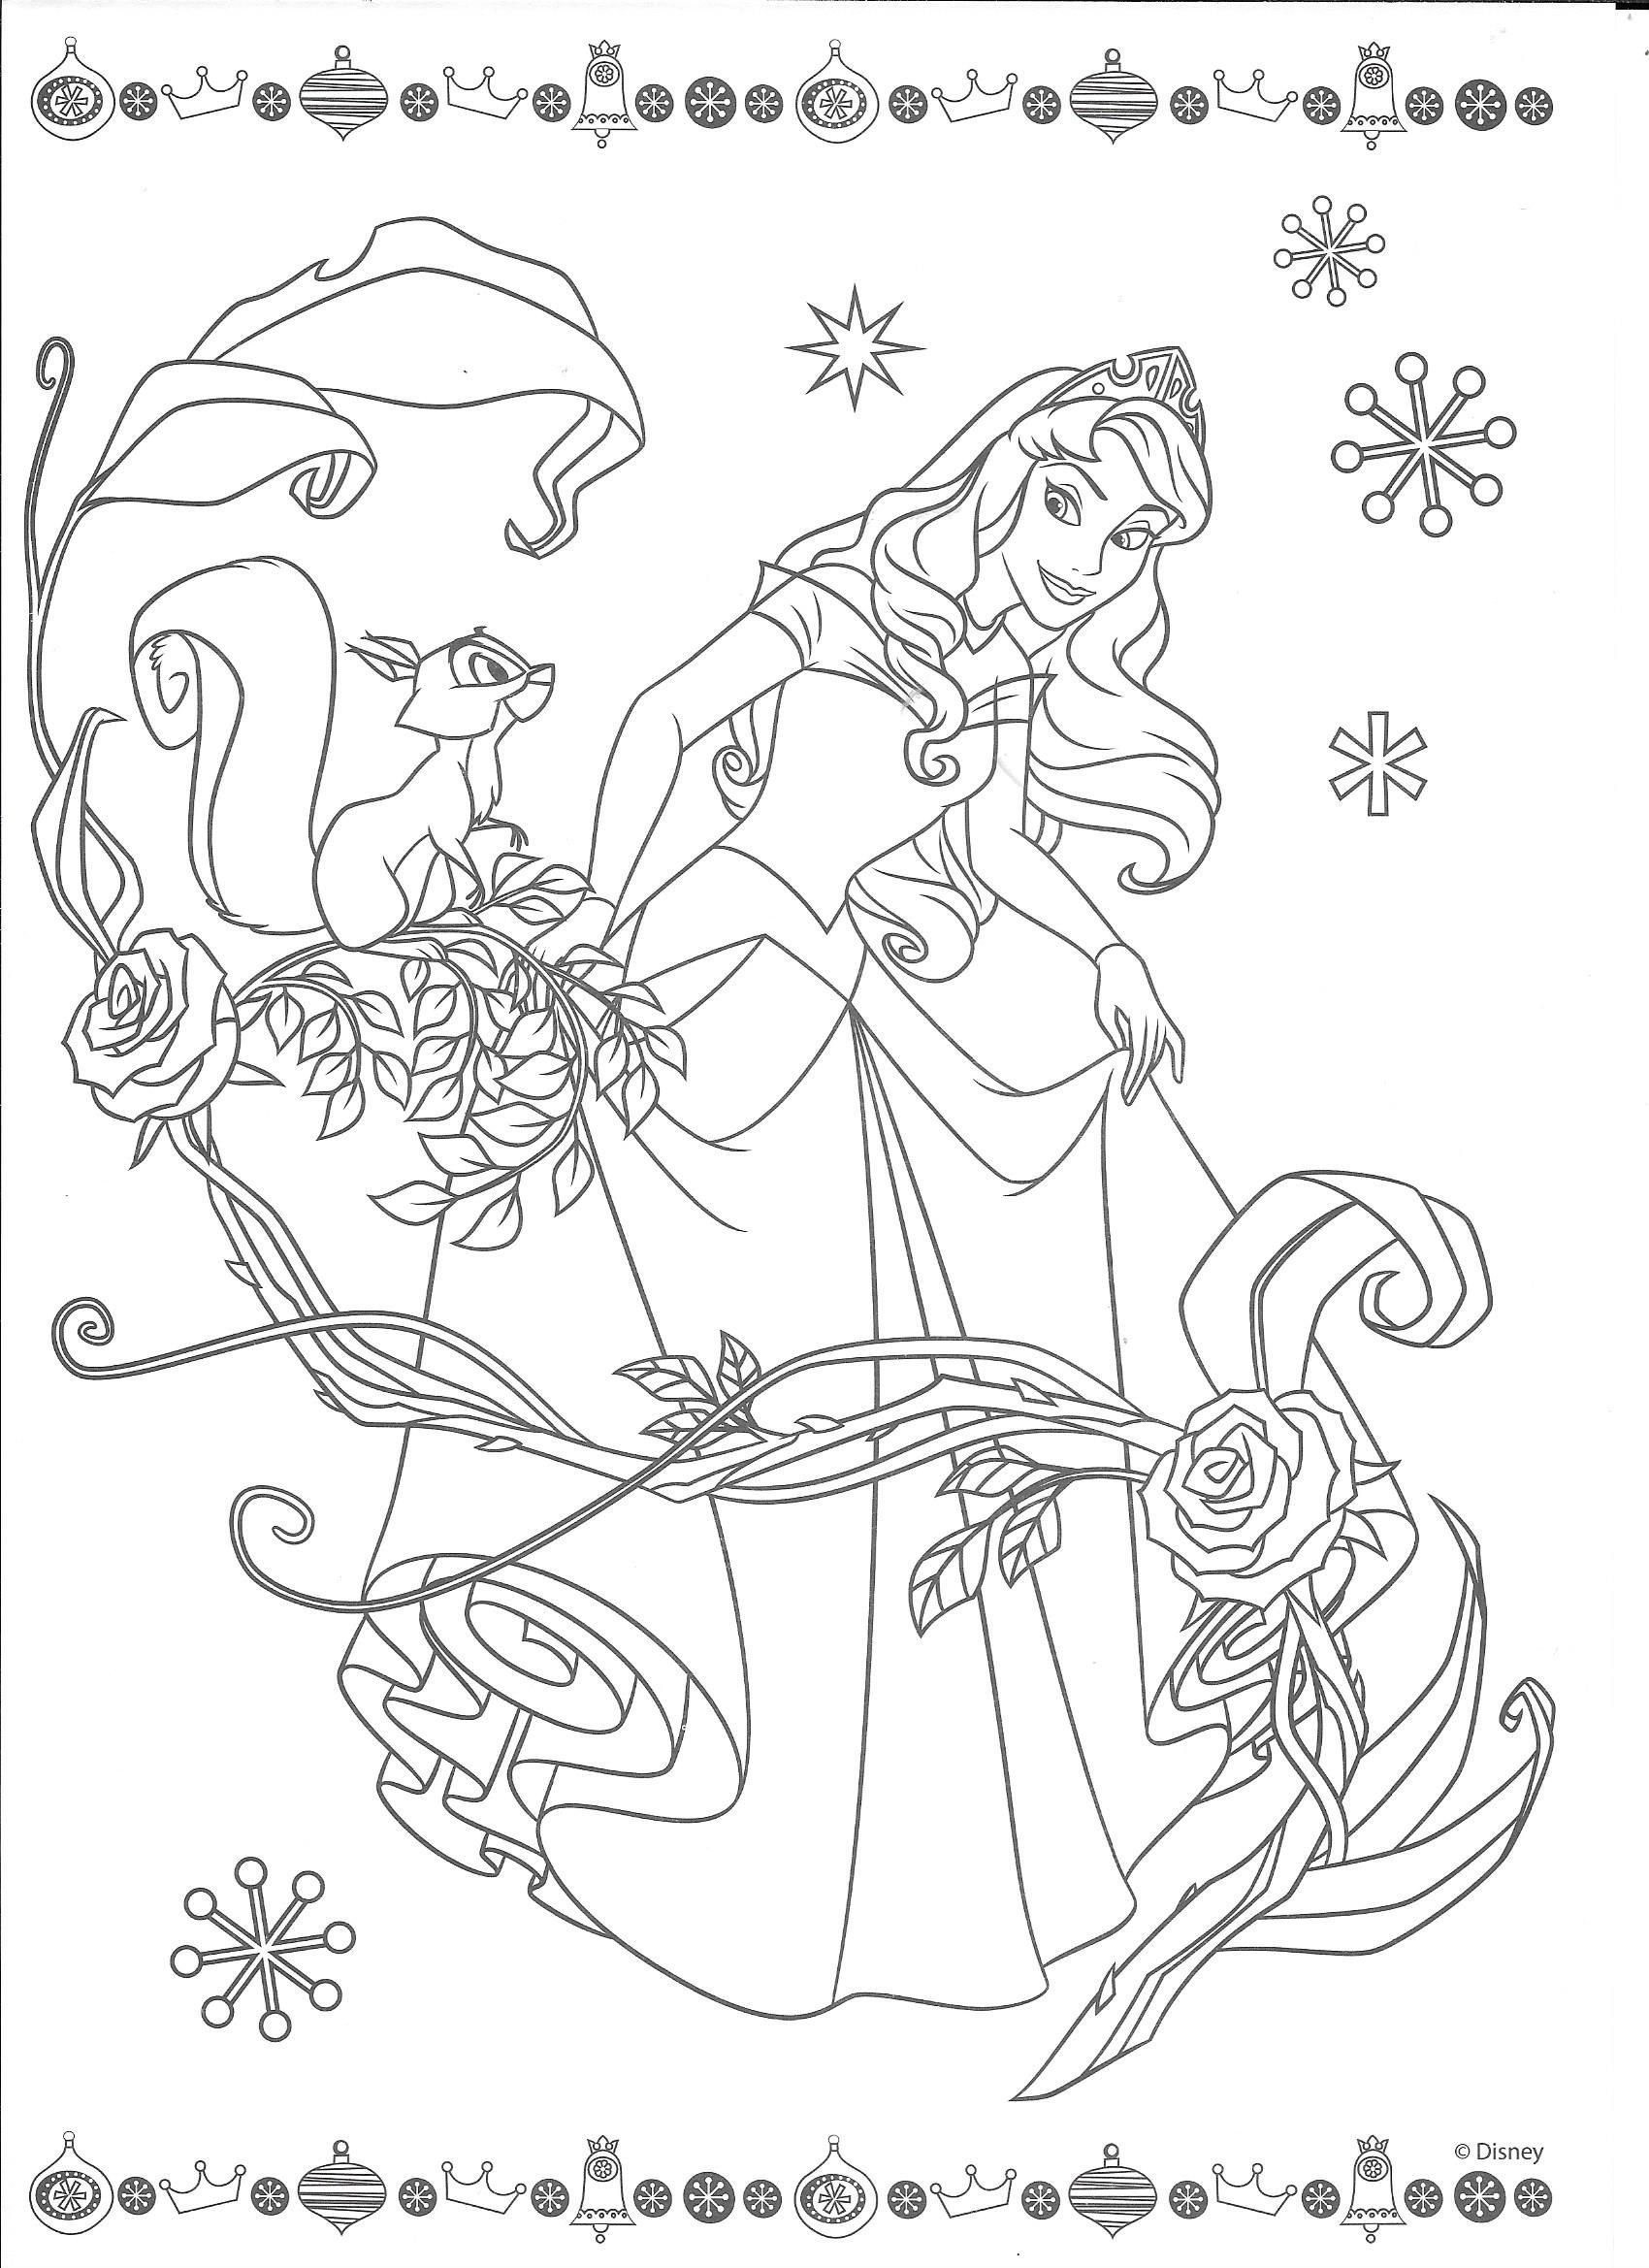 Therapy Coloring Pages Anti Stress Therapy Coloring Pages Disney Coloring Pages Disney Princess Coloring Pages Cute Coloring Pages